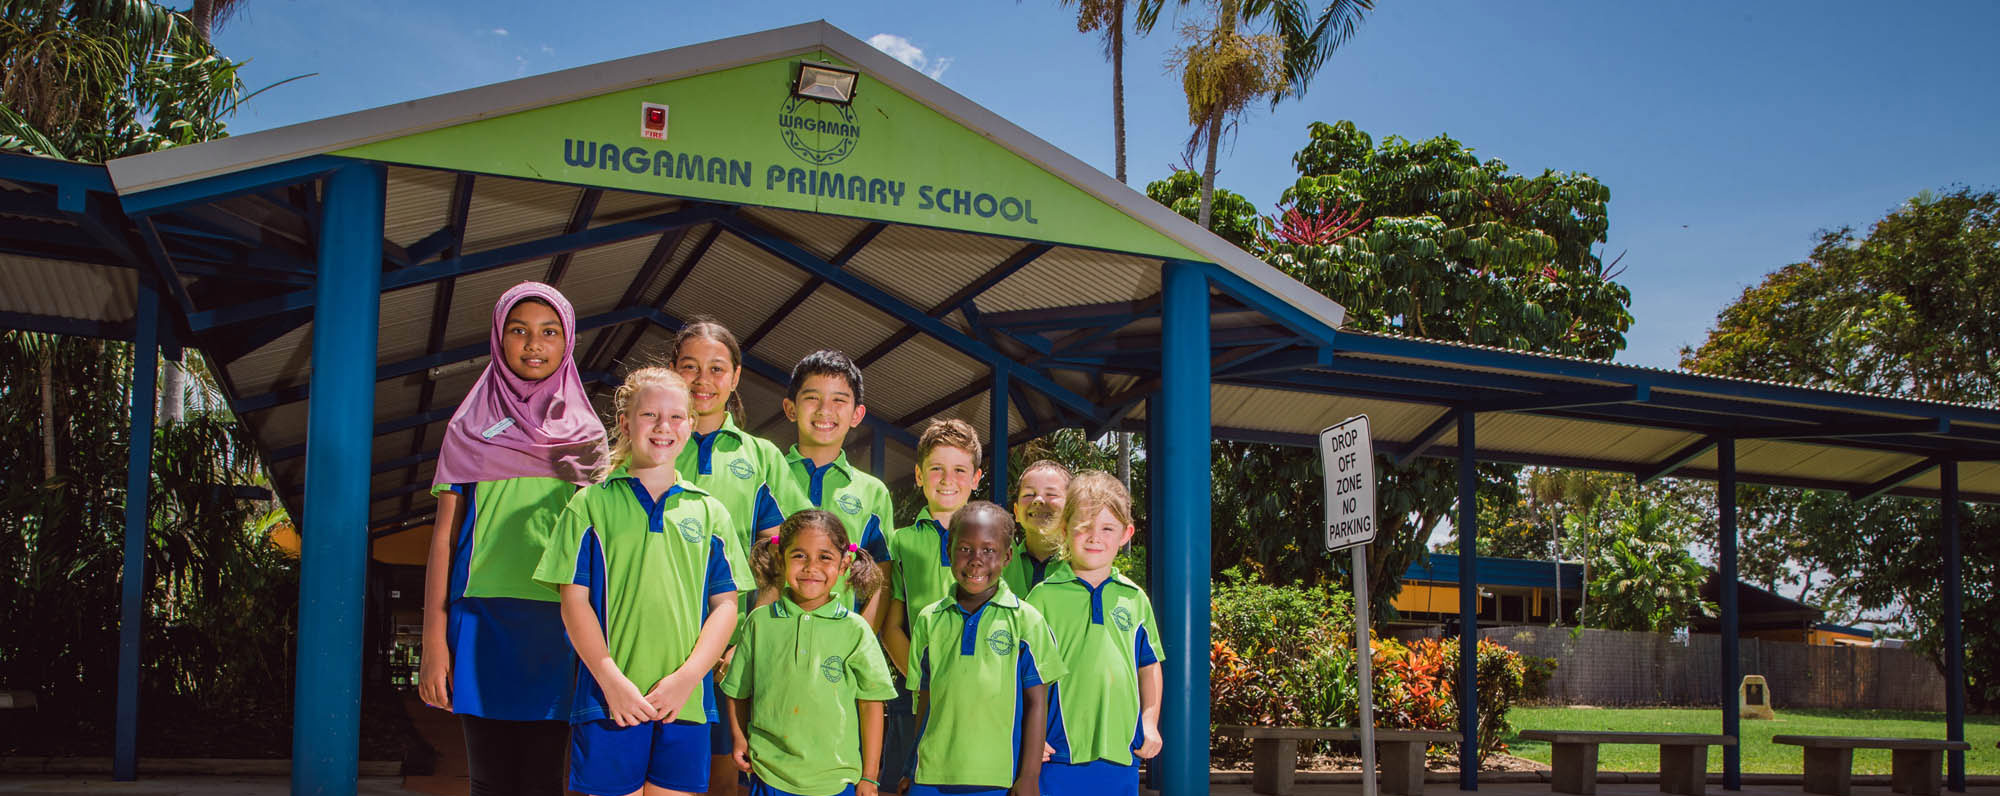 Our students standing outside the front of the school